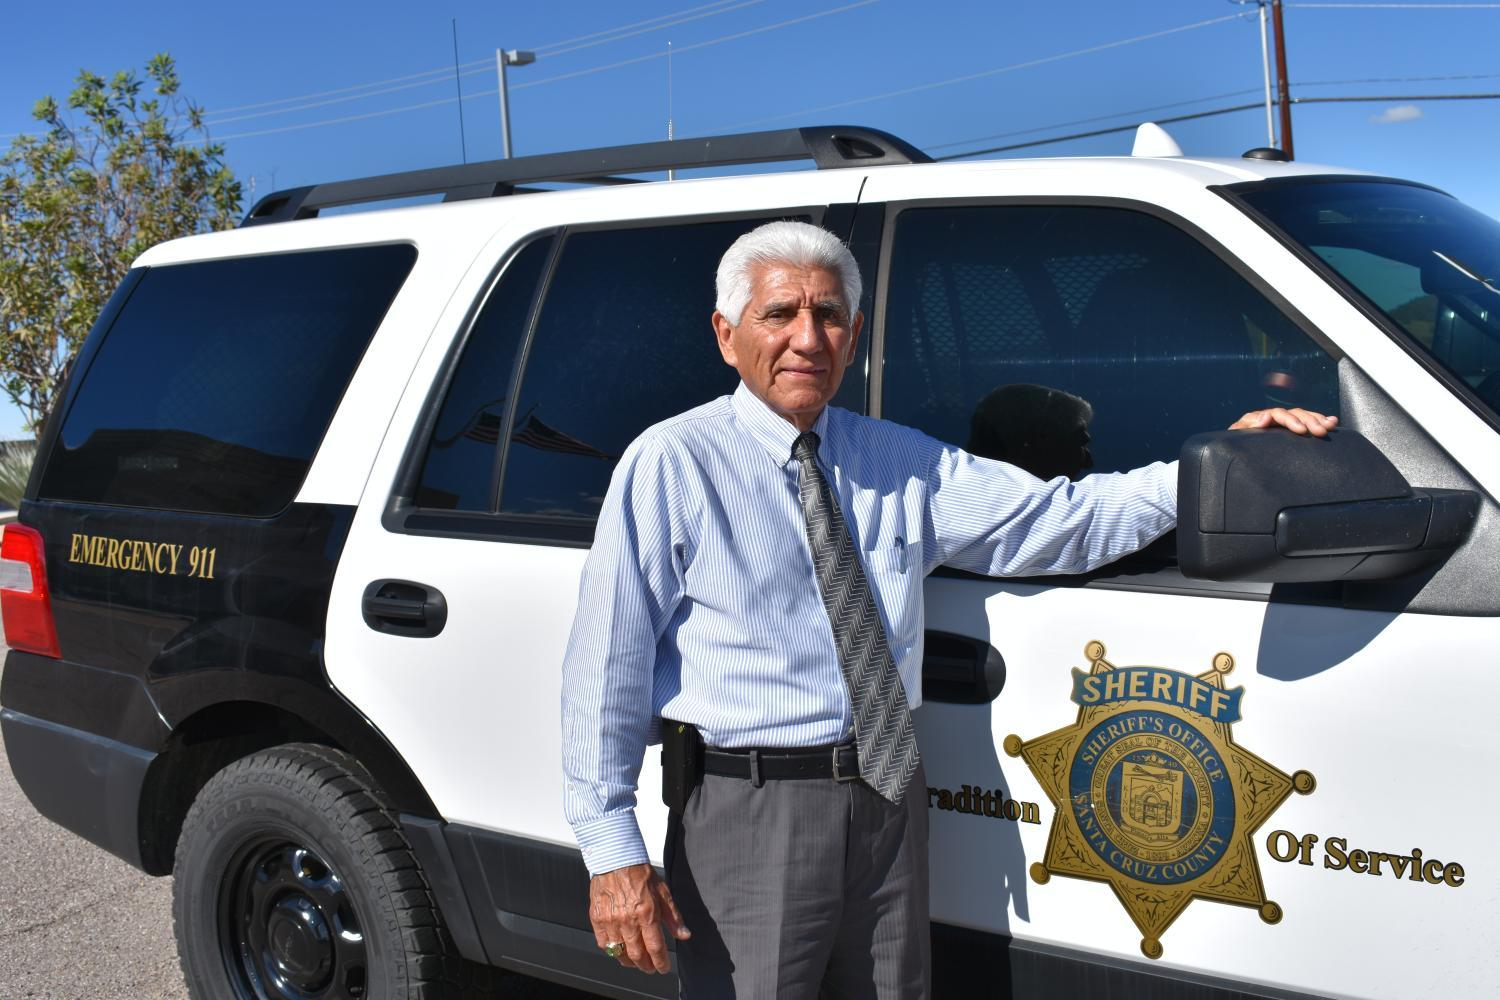 Santa Cruz County Sheriff Tony Estrada